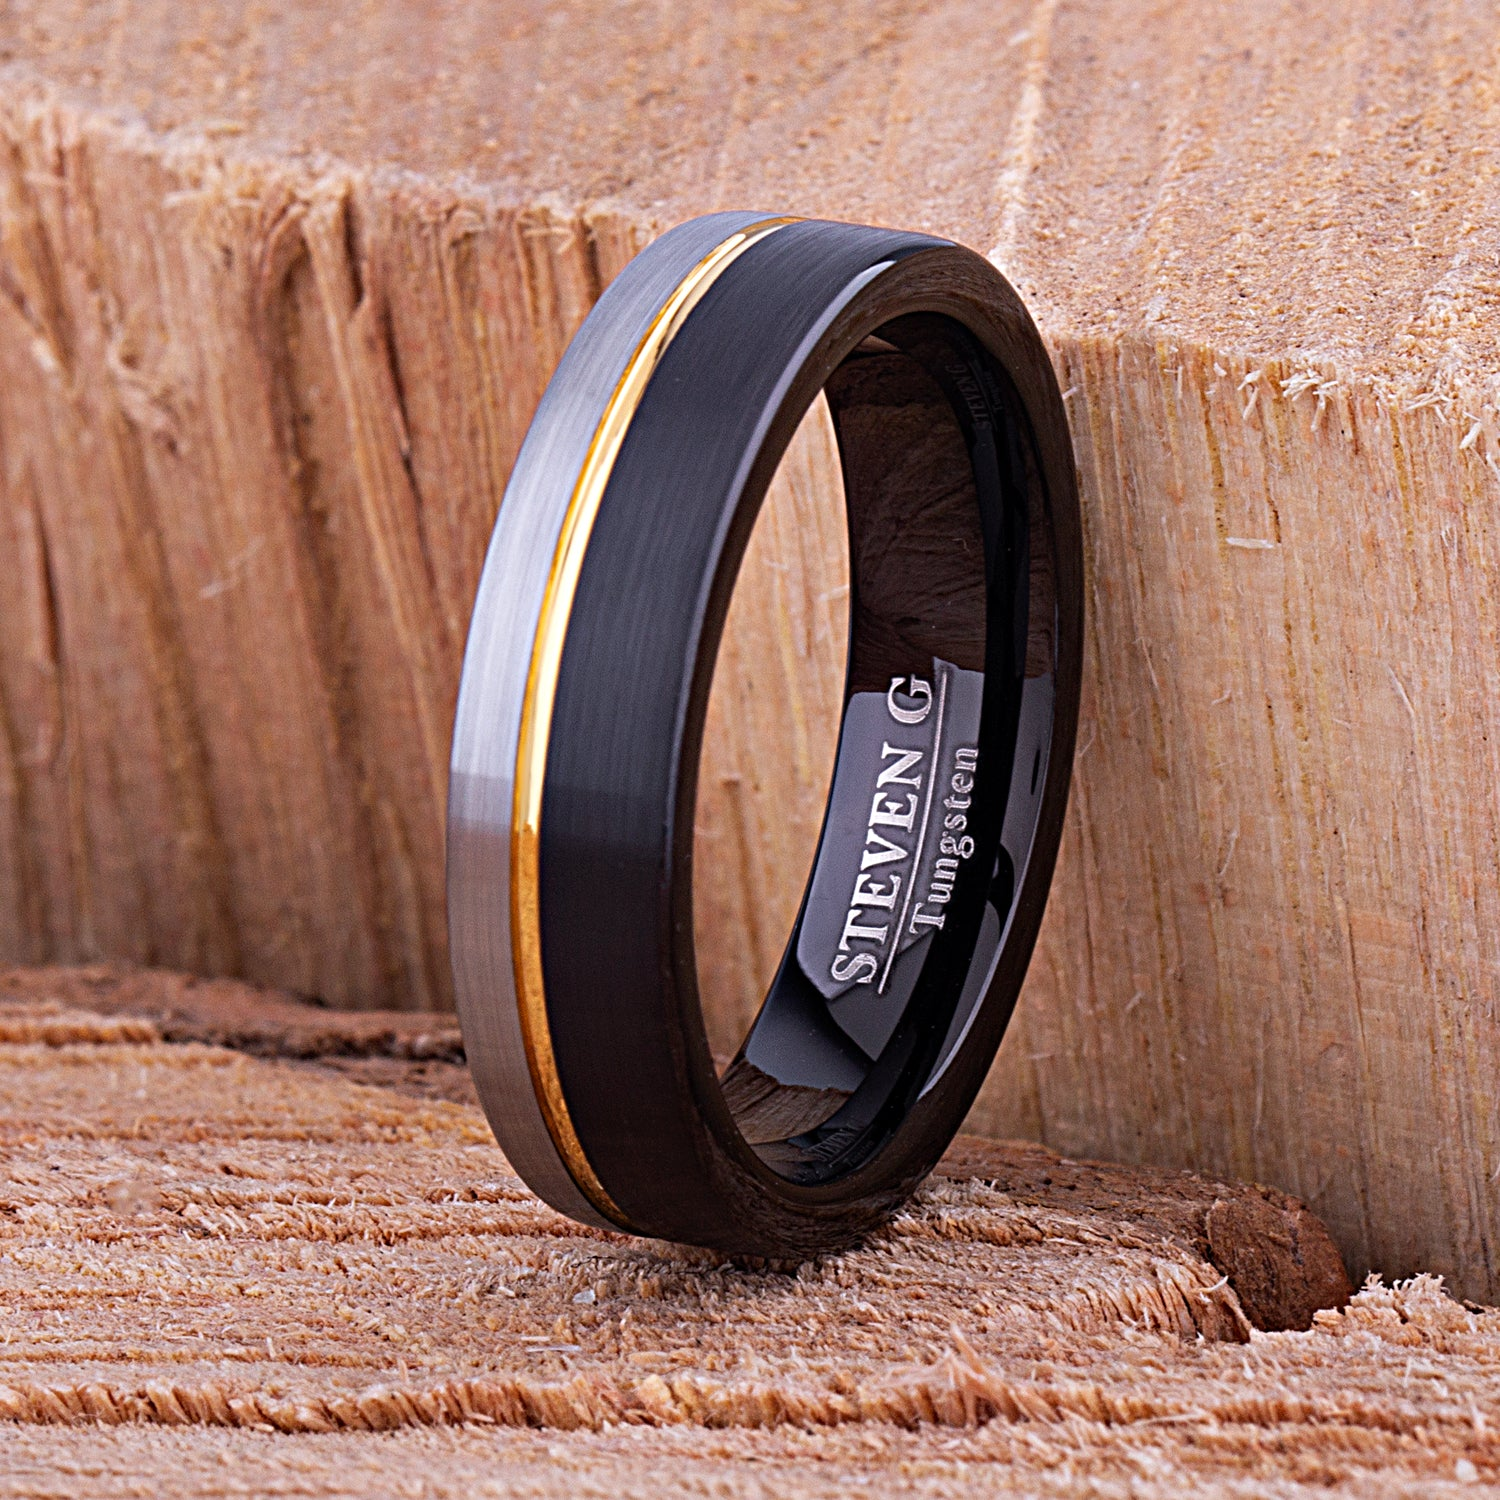 Tungsten Ring Black & Yellow Gold 6mm - TCR120 black & yellow gold engagement band or wedding ring or promise band